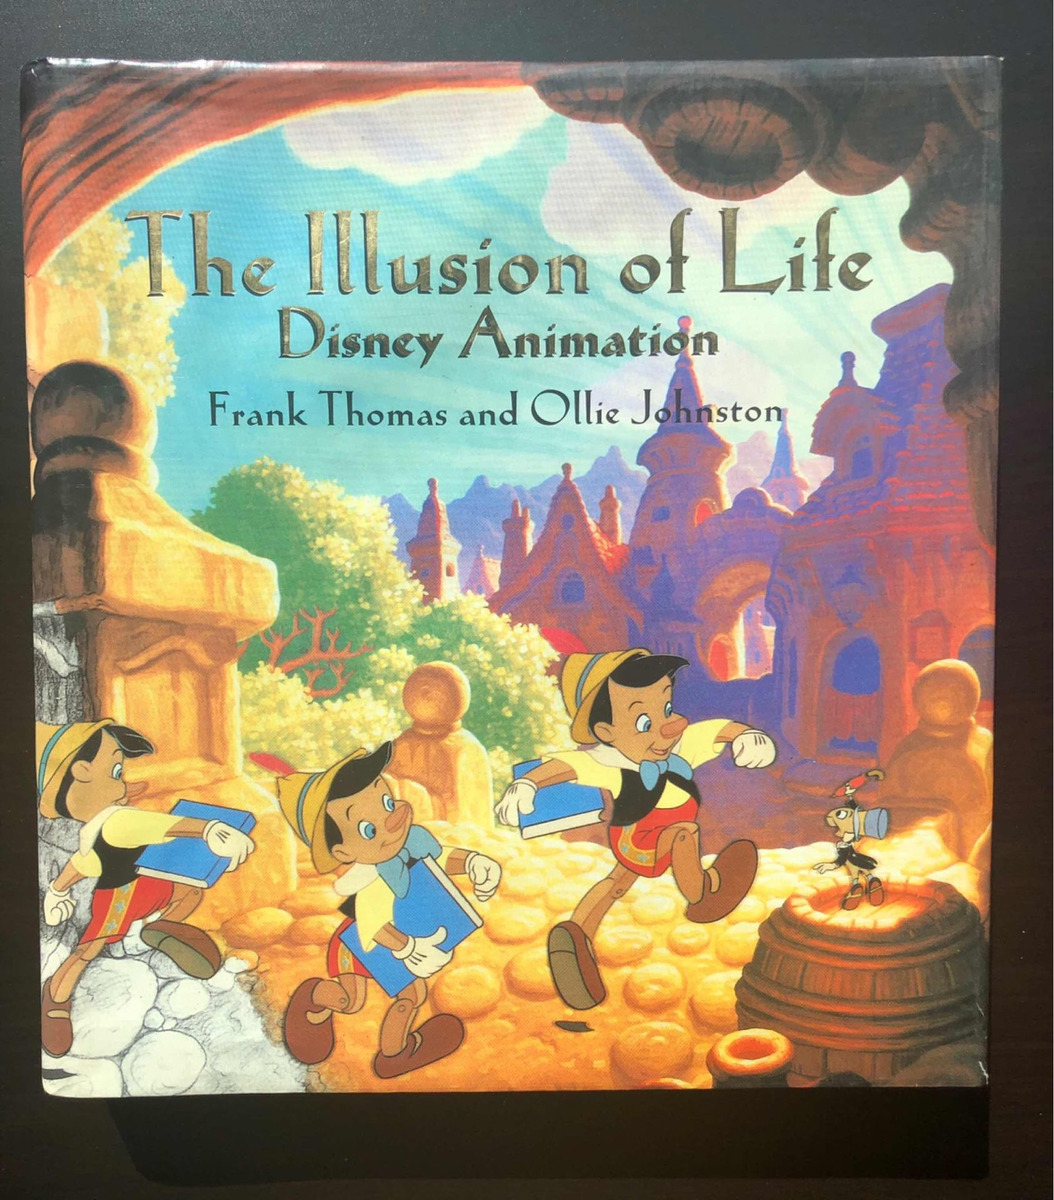 illusion of life meaning